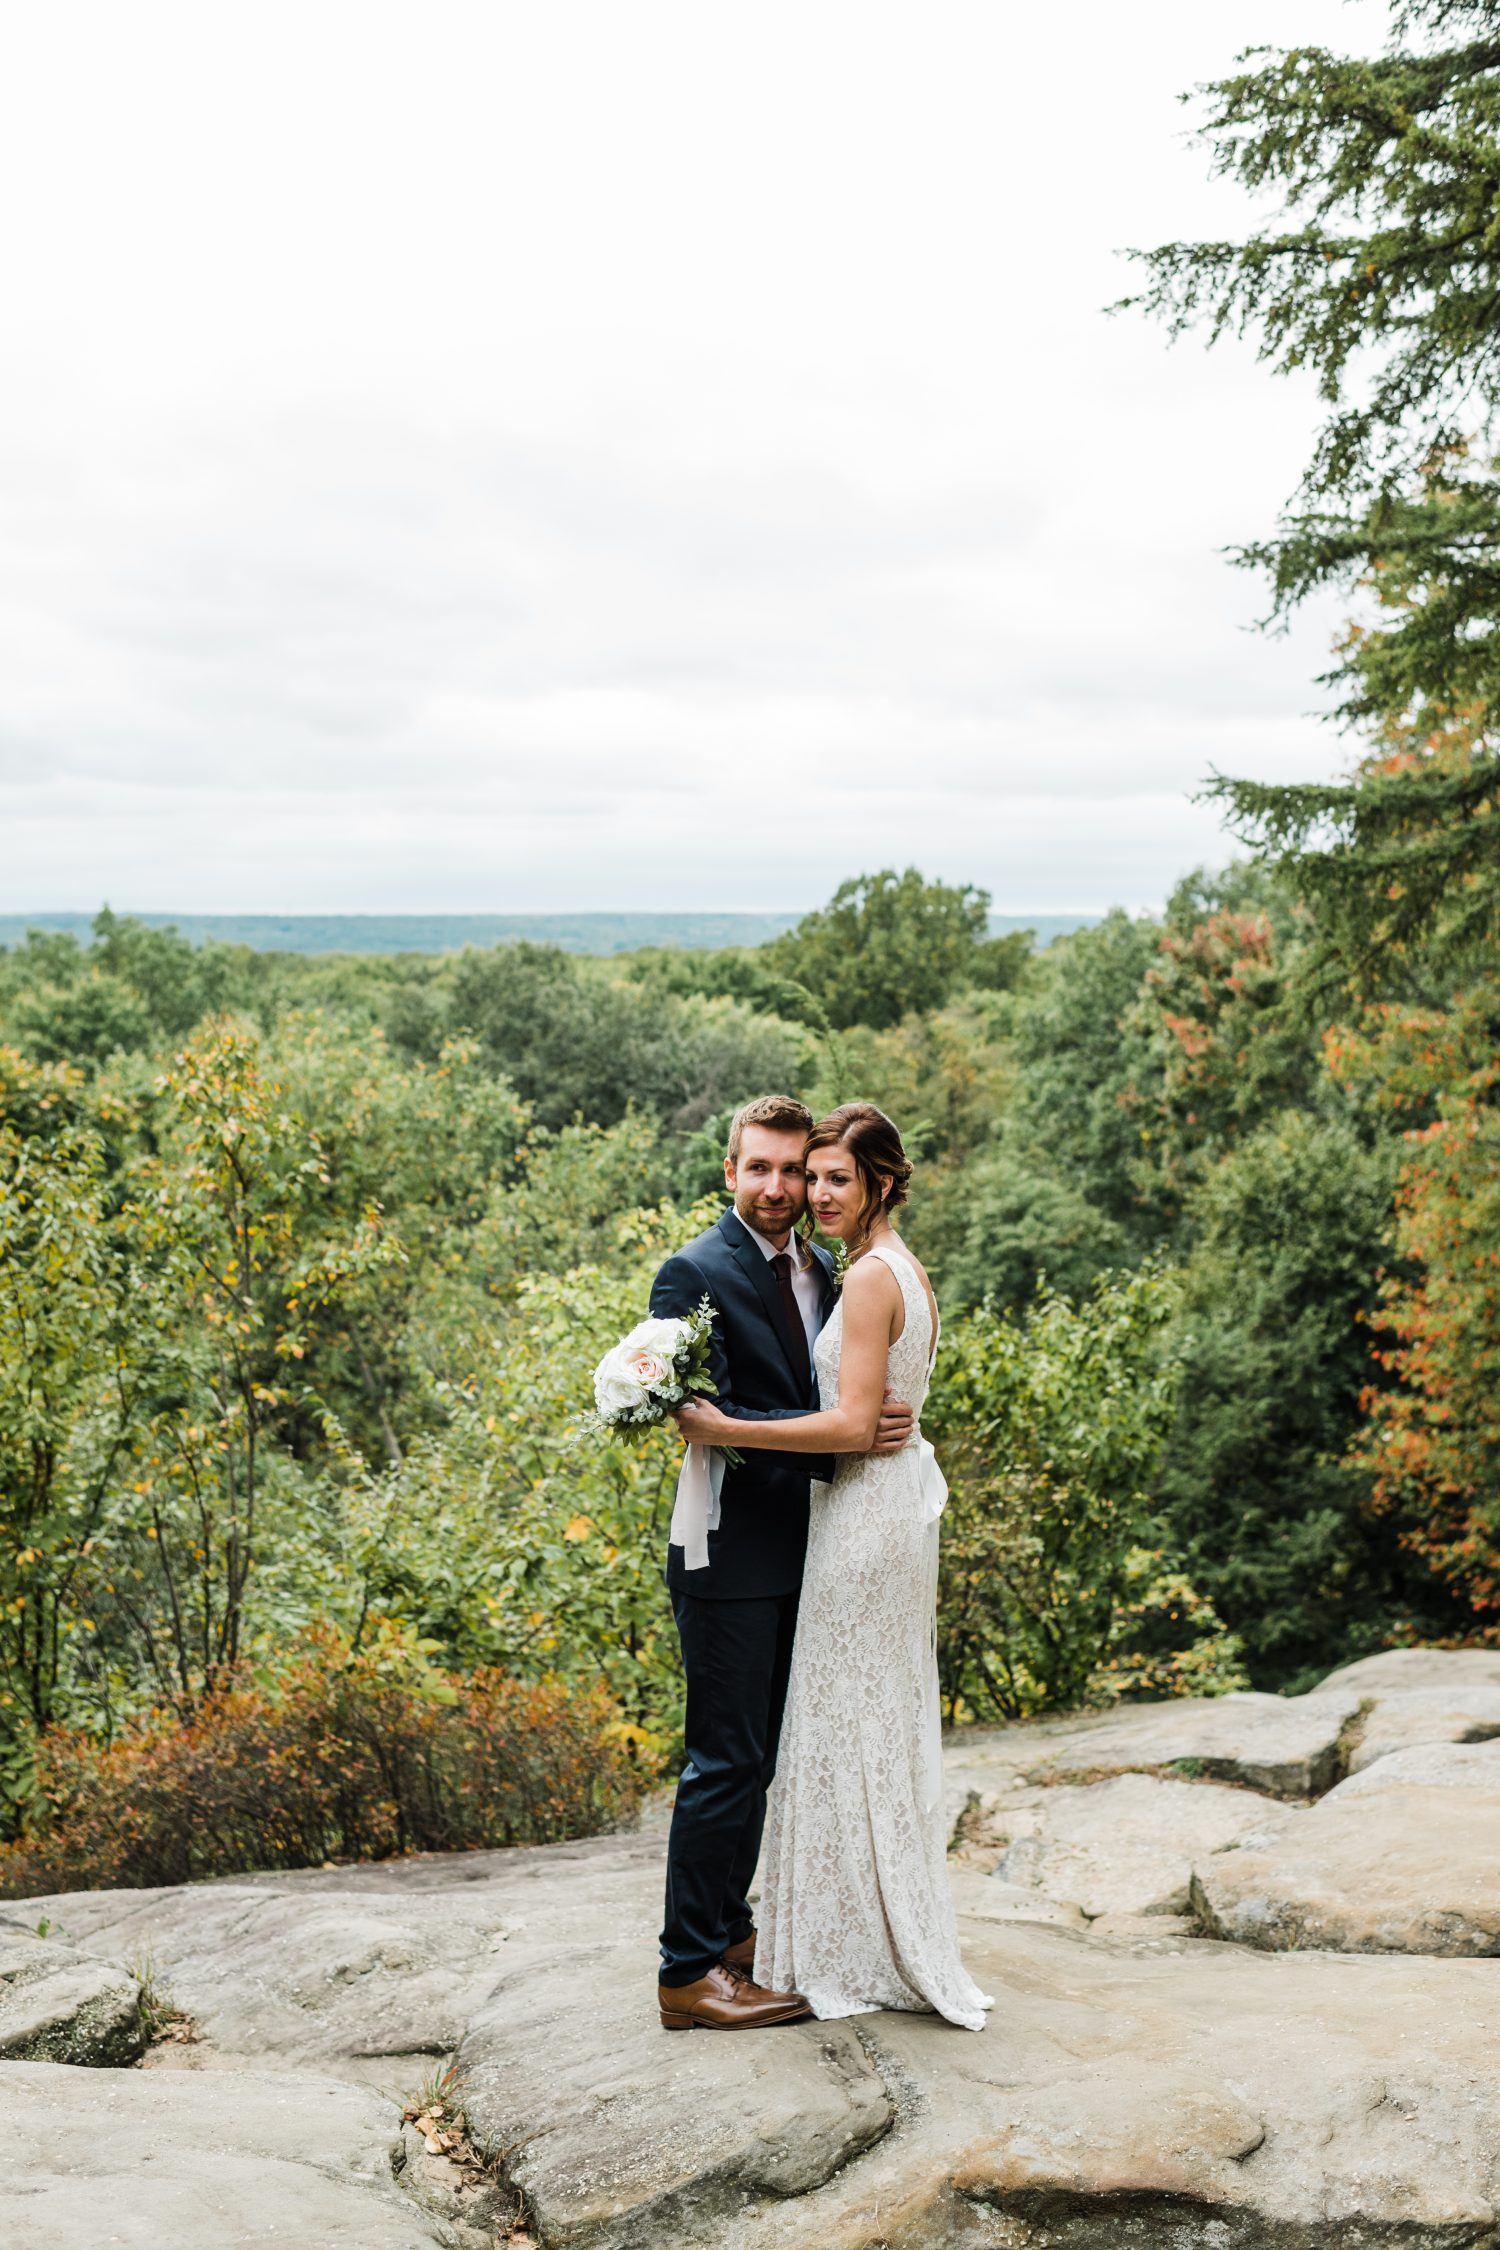 Easterday Creative   Adventurous wedding photographer and storyteller   Elopement and intimate wedding photography   Based in SC + NC